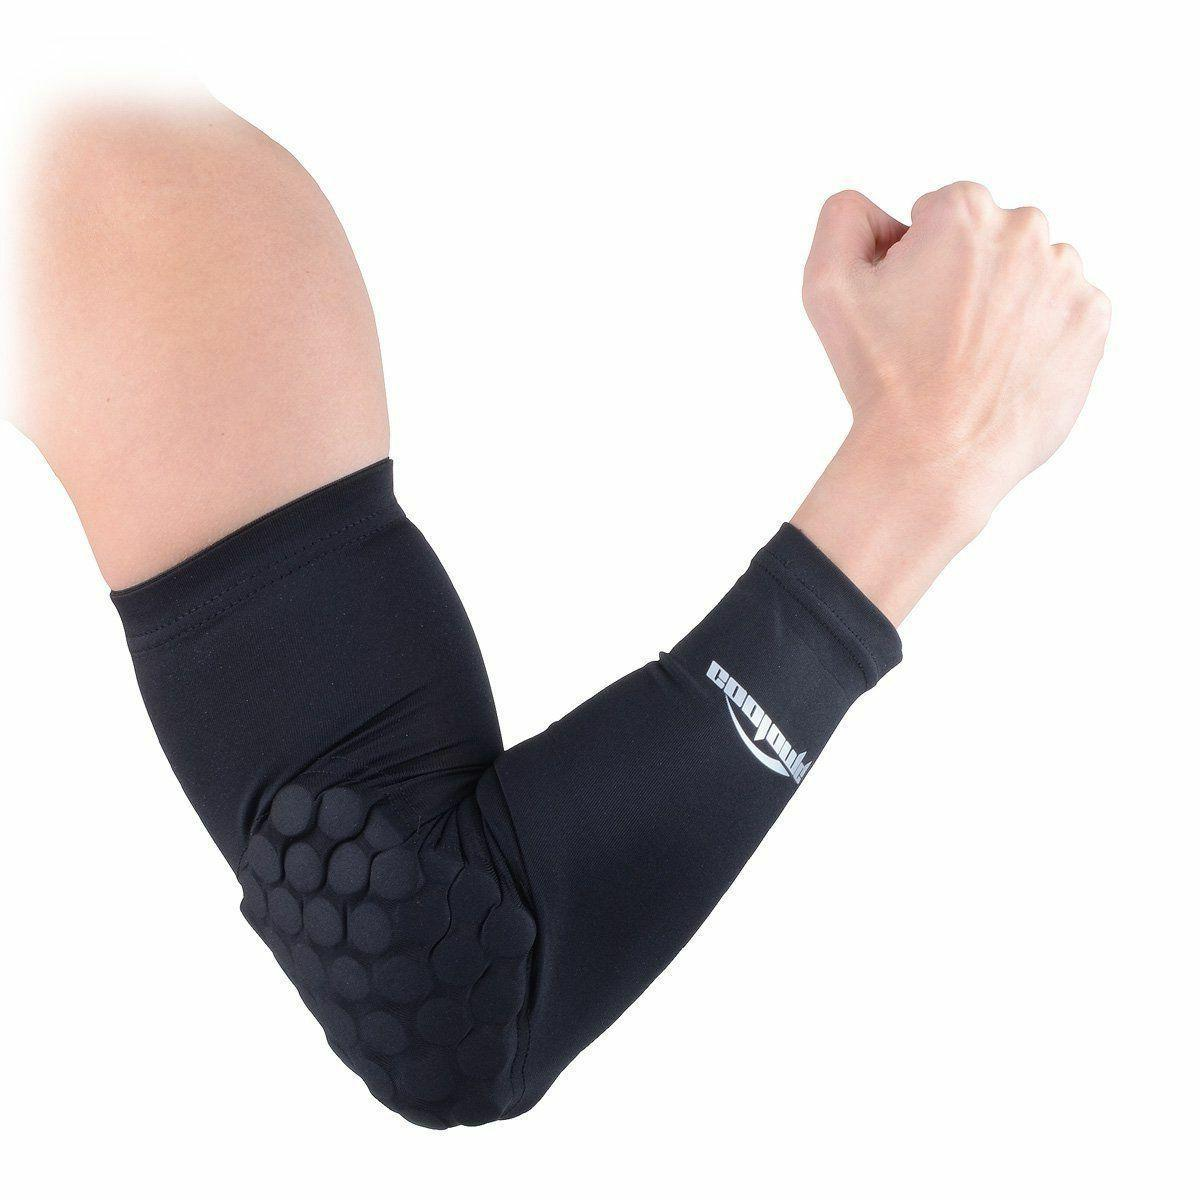 combat basketball pad protector gear knee support